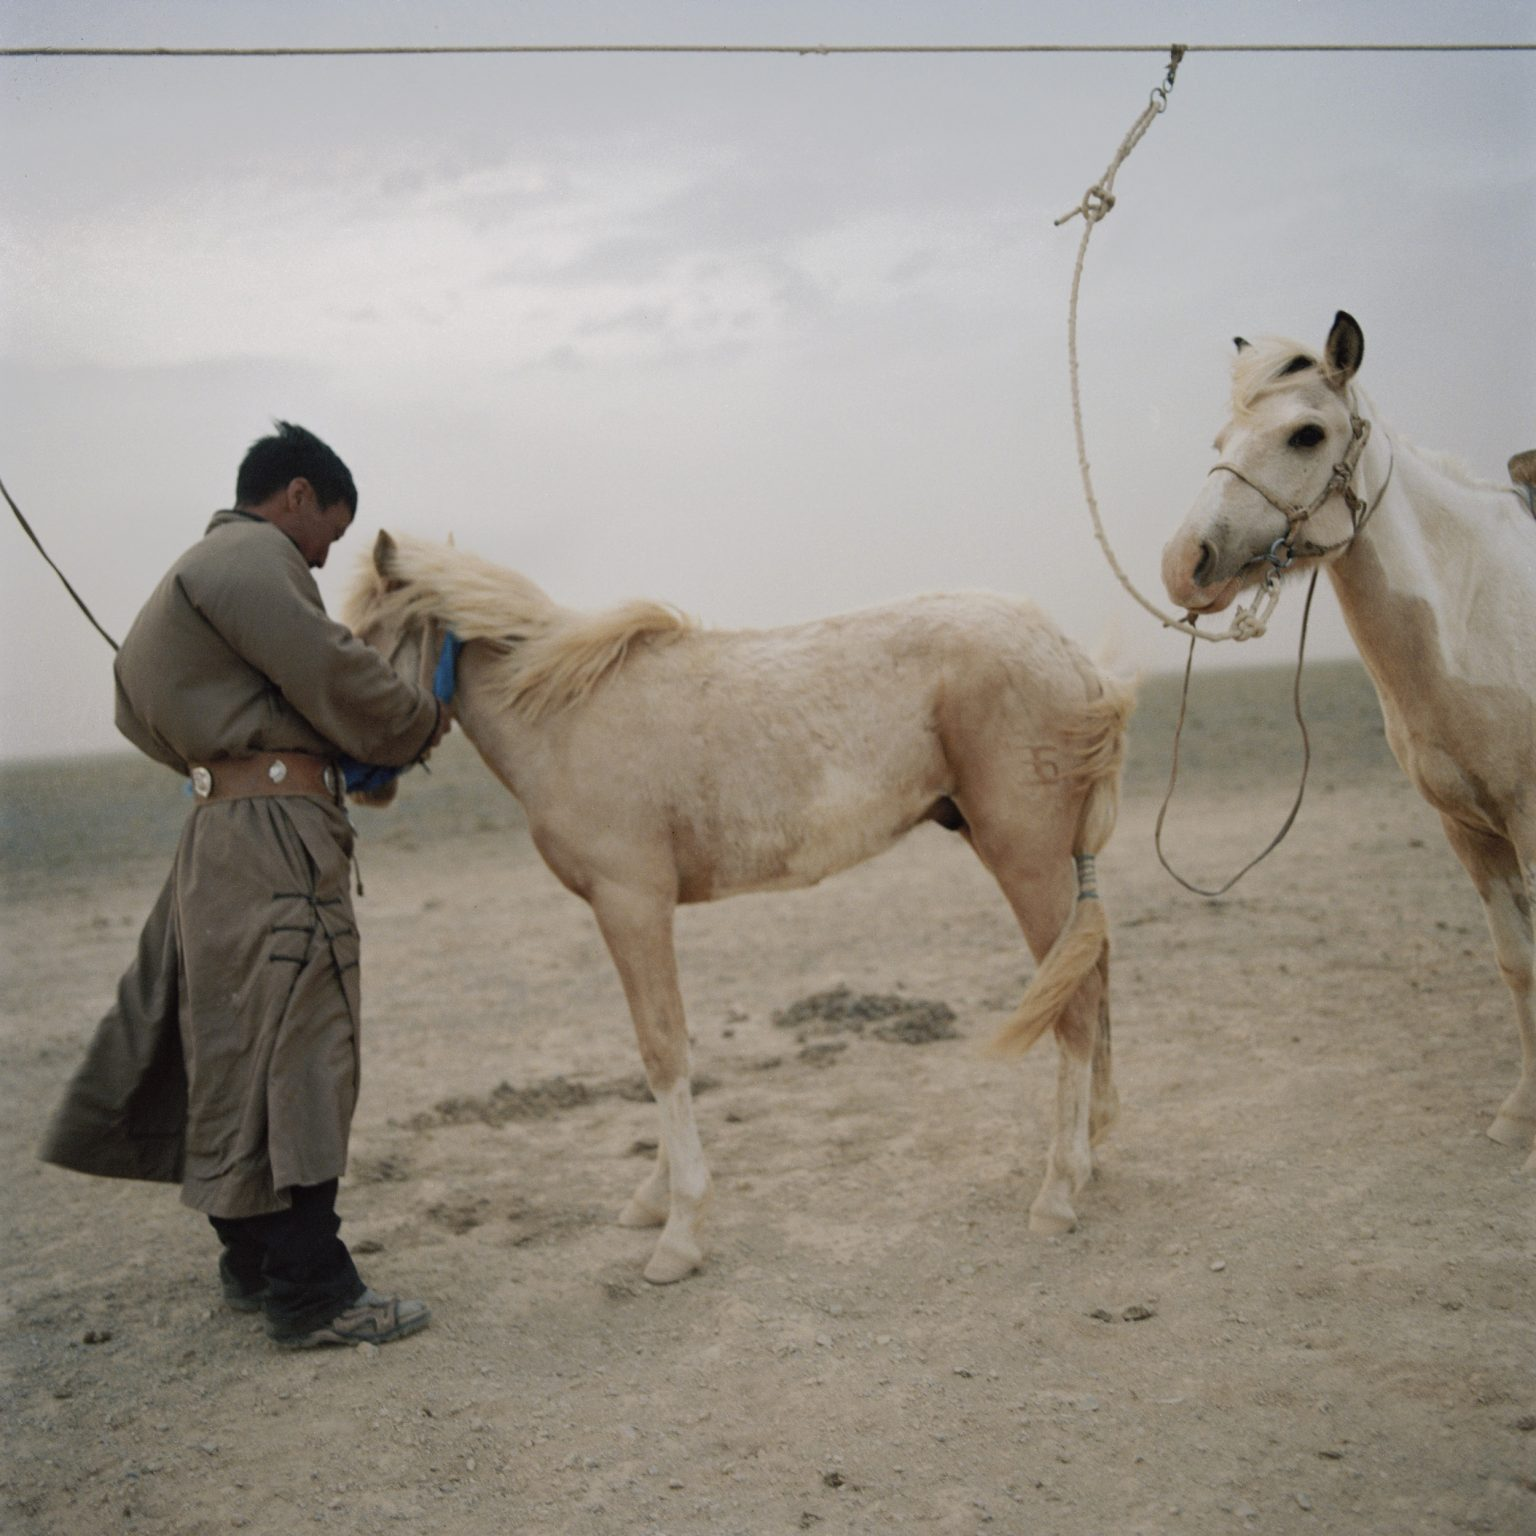 Tuvshinbayar is tying his horses to prevent them from escaping during the sand storm. The horses are primarirly used for the races which take place during the Naadam festival and they are ridden by the kids. Omongovi, 2012